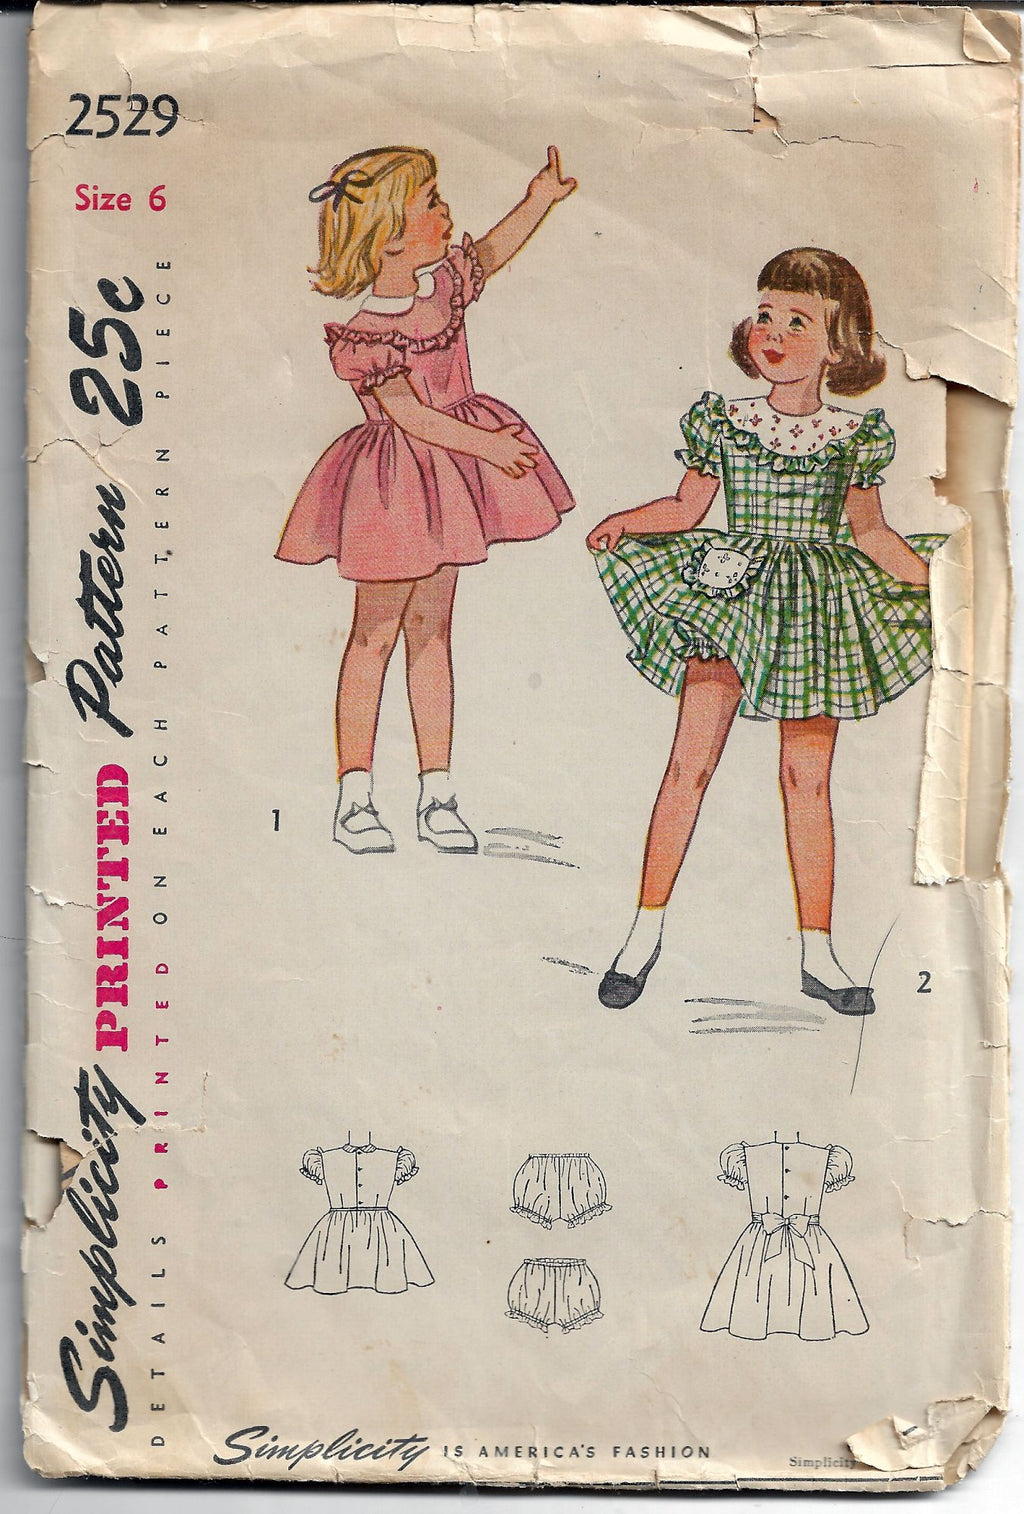 childs dress vintage pattern 1940s